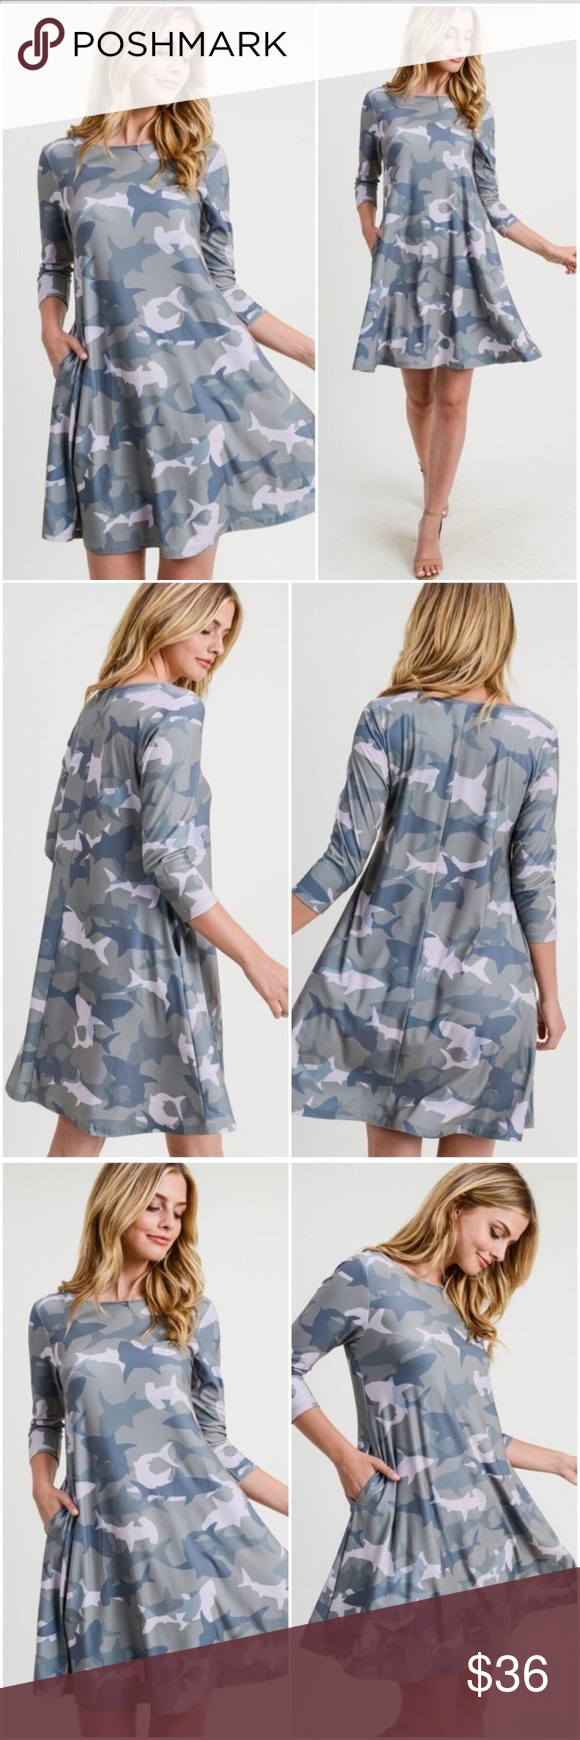 """Camo shark print dress, sooo cute! A fave! Super soft perfect little dress. great to run around town in, work, party, anything. so cute, can pair with sandals, pumps, sneakers, boots or booties.  round neck two side seam pockets! falls above knee in an a-line silhouette very soft and comfortable fabric with stretch model wears a small with measurements 5'9"""" 34Dx24 x25  95%poly/5%spandex handwash cool with tumble dry low Yelete Dresses #dresseswithsneakers"""